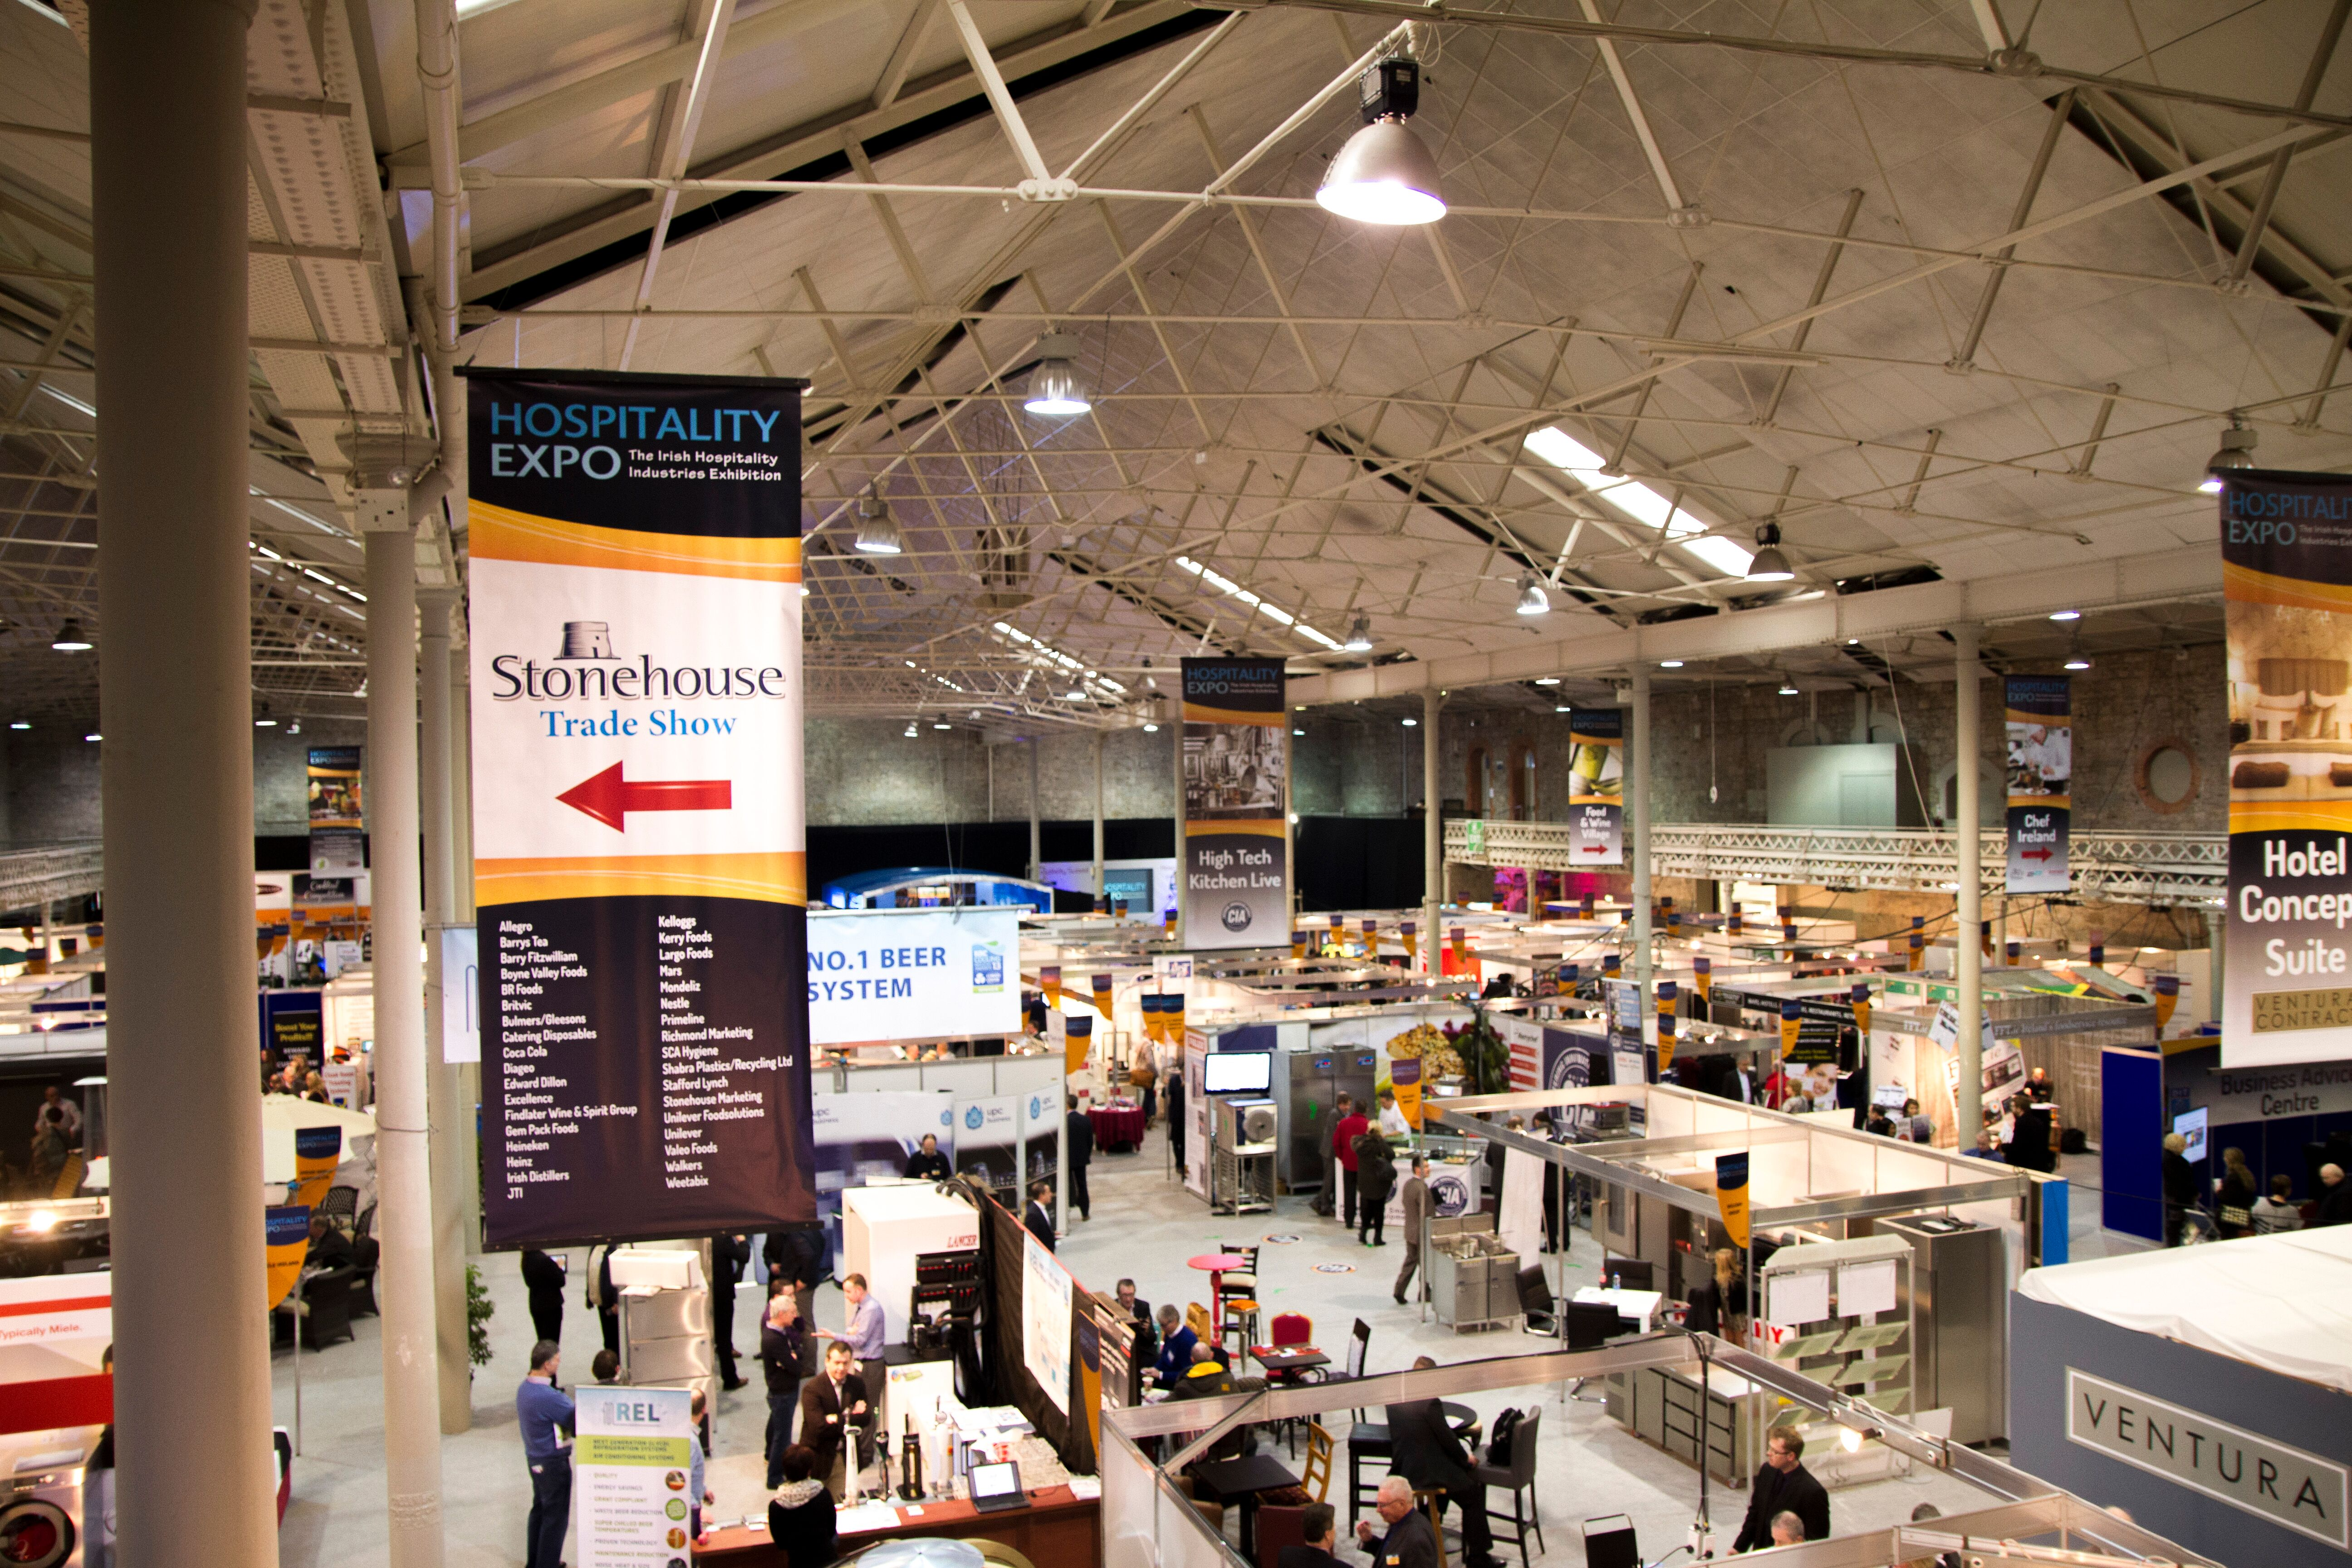 The Knitting And Stitching Show 2017 Rds : Over 200 Exhibitors Confirmed for Hospitality Expo FFT.ie